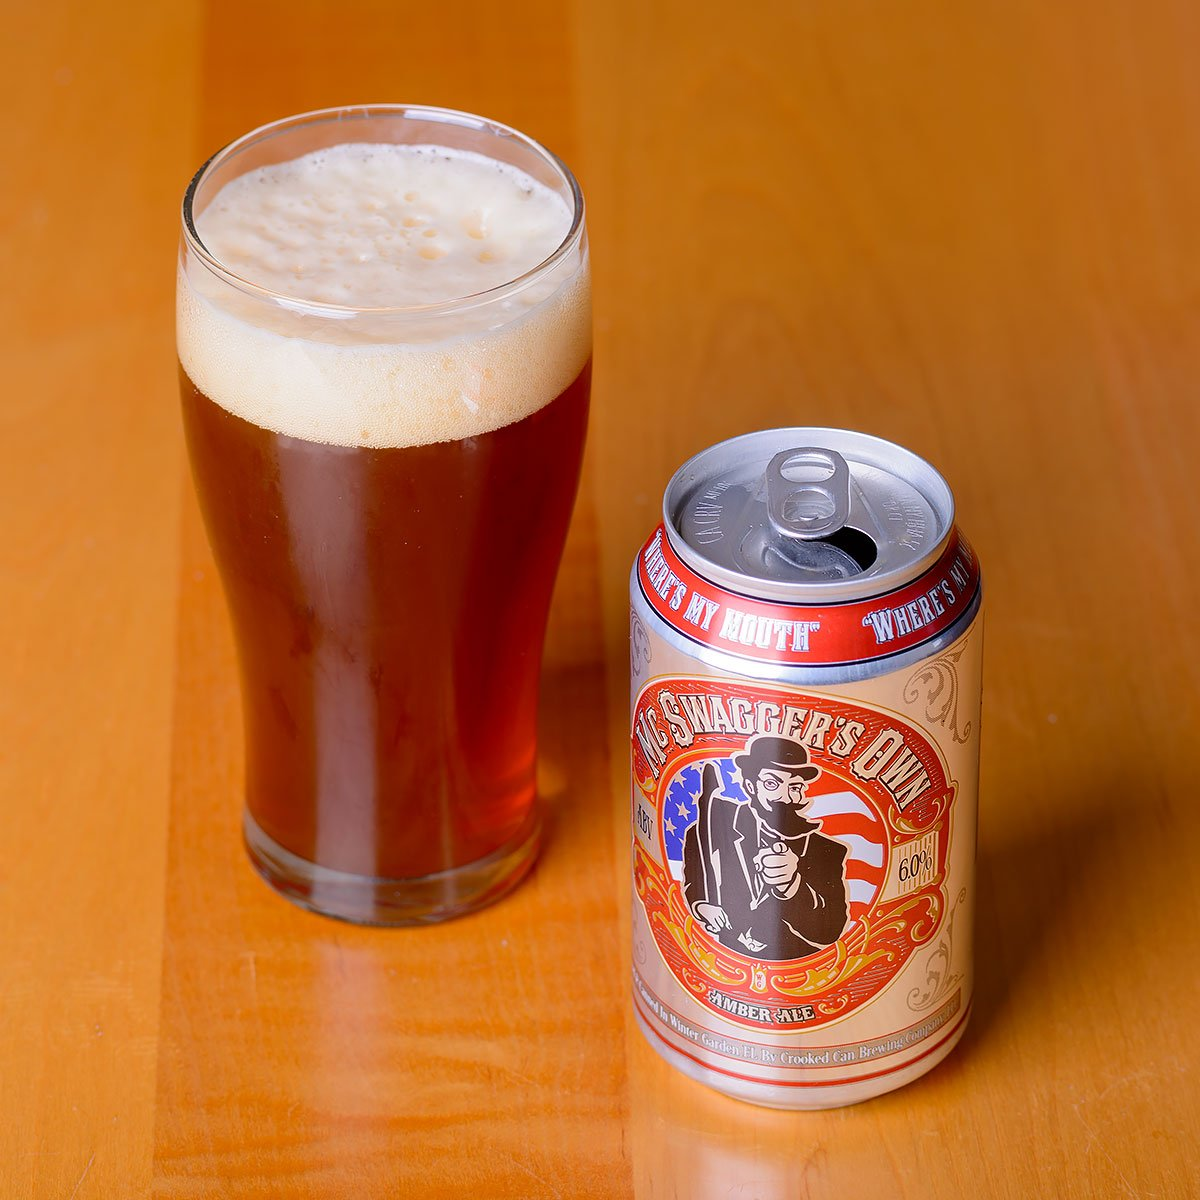 McSwagger's Own, an American Amber Ale by Crooked Can Brewing Company